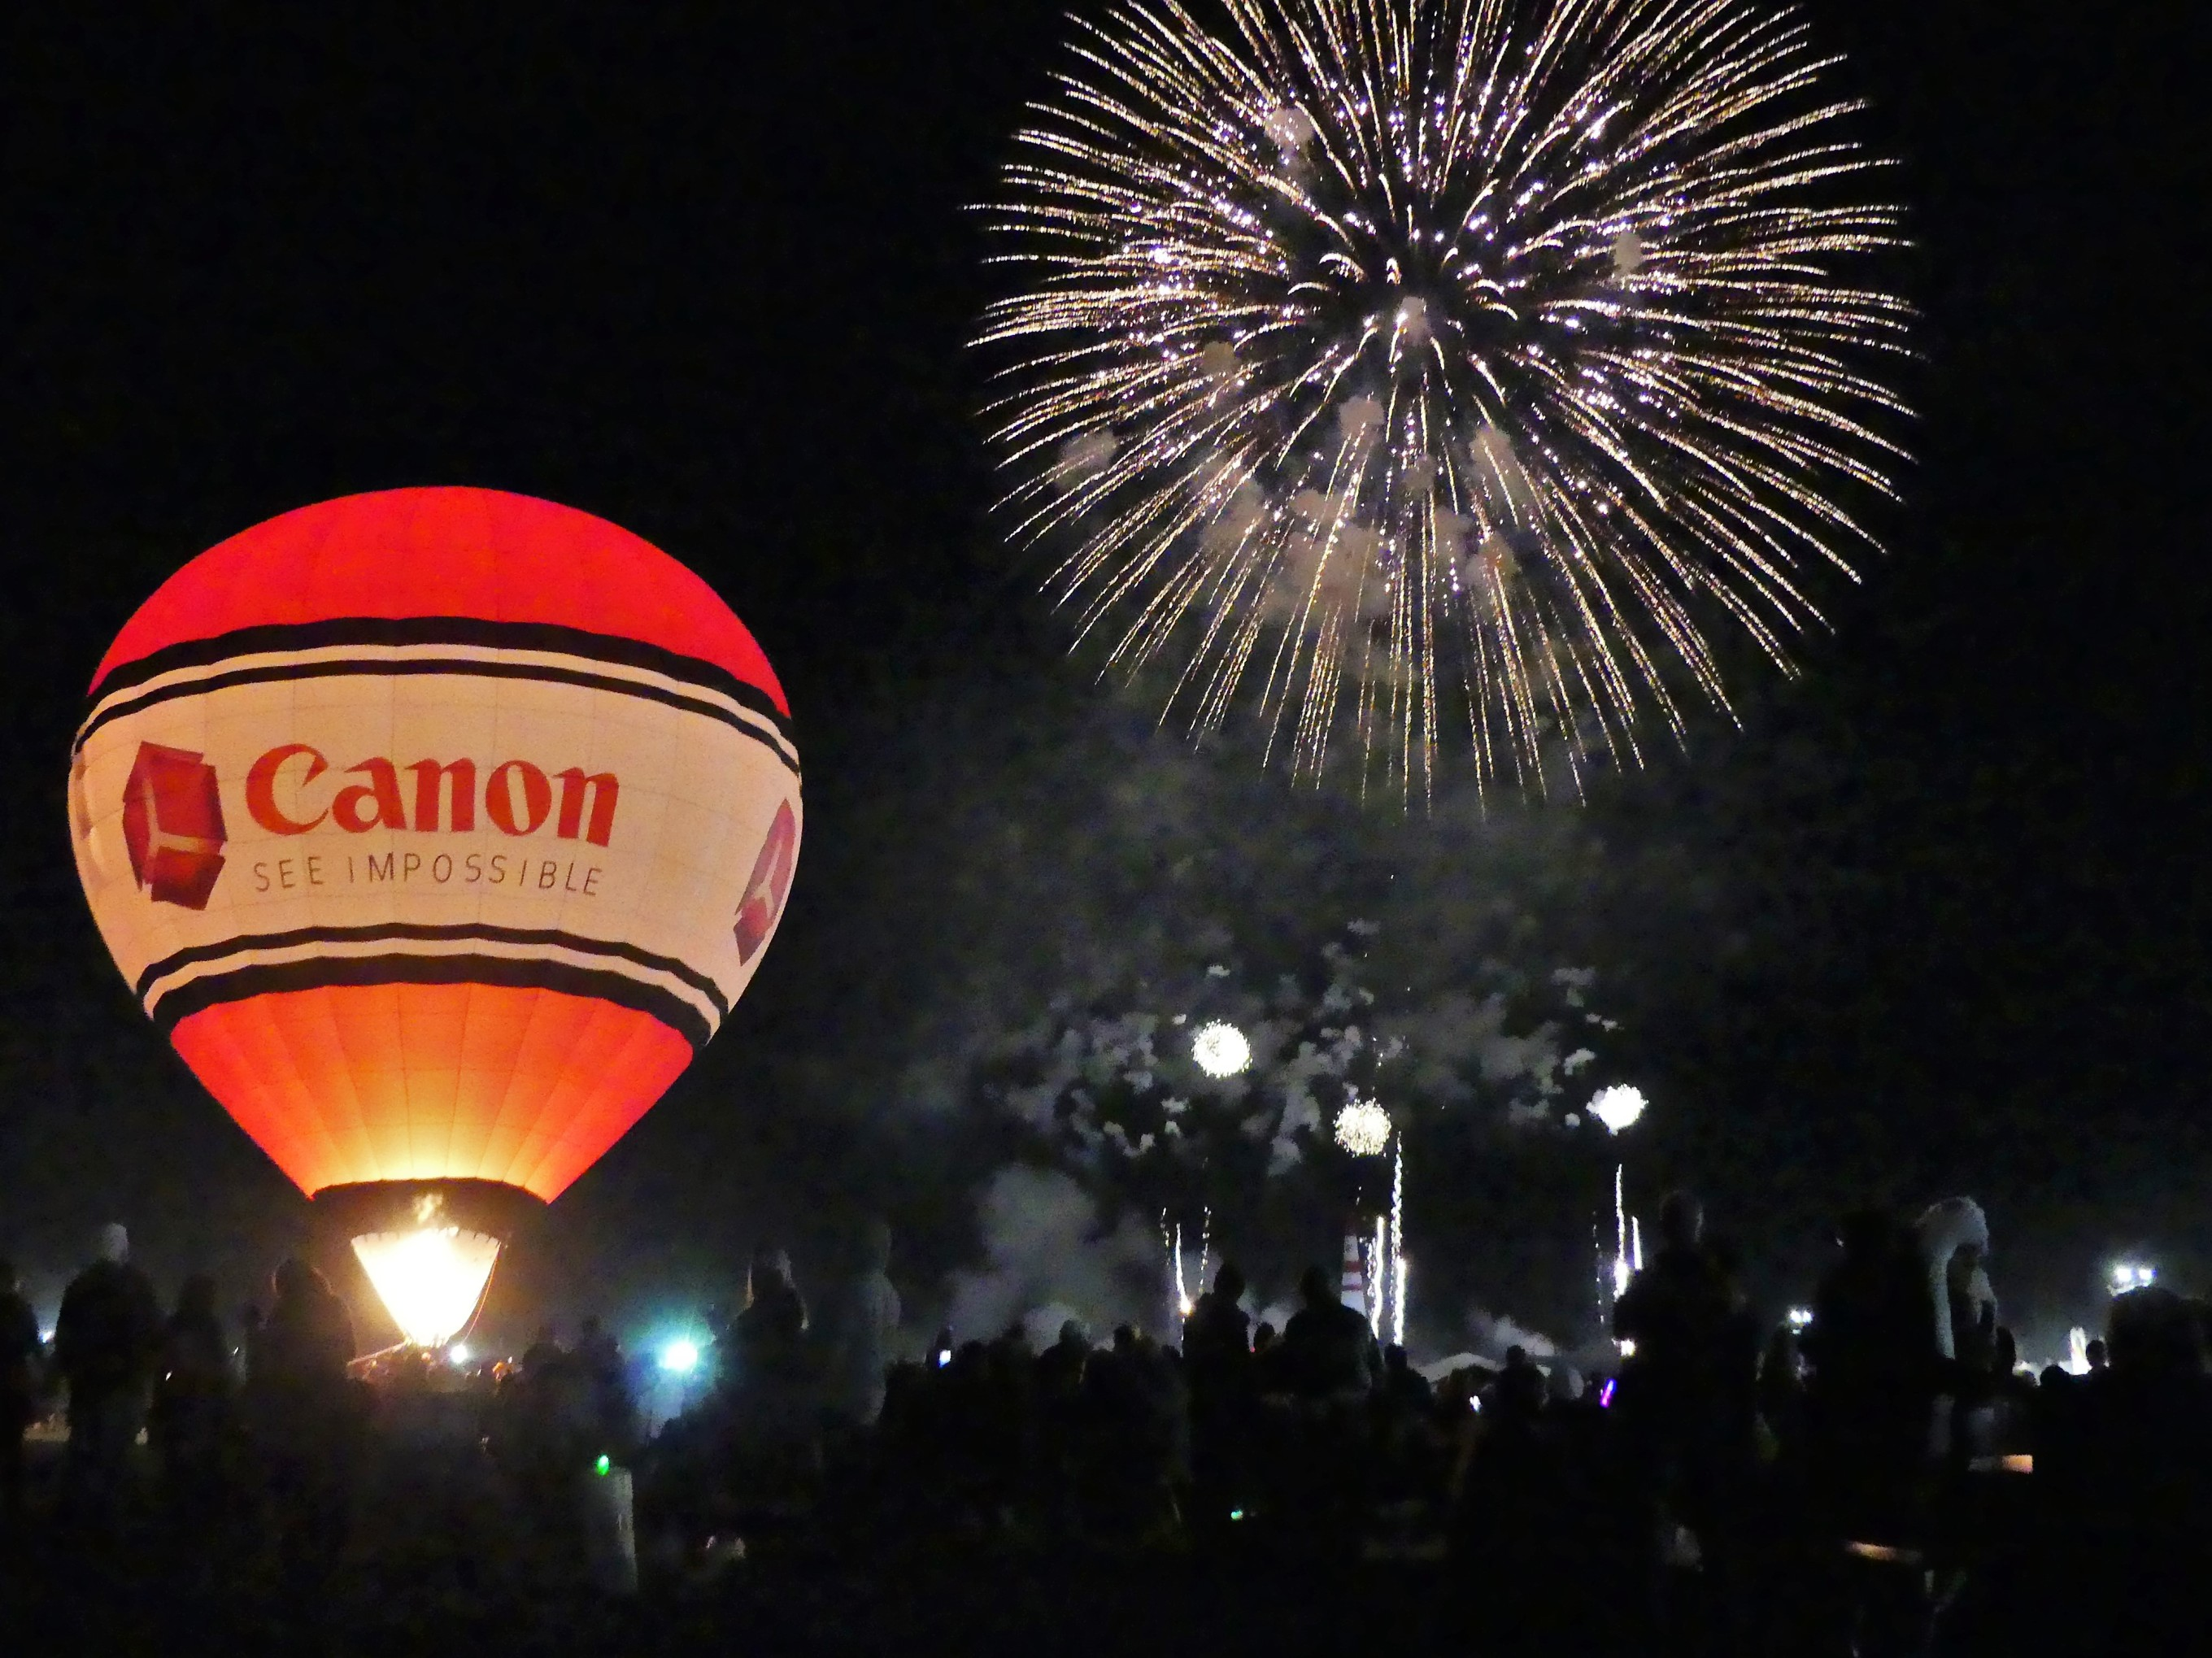 Canon fireworks